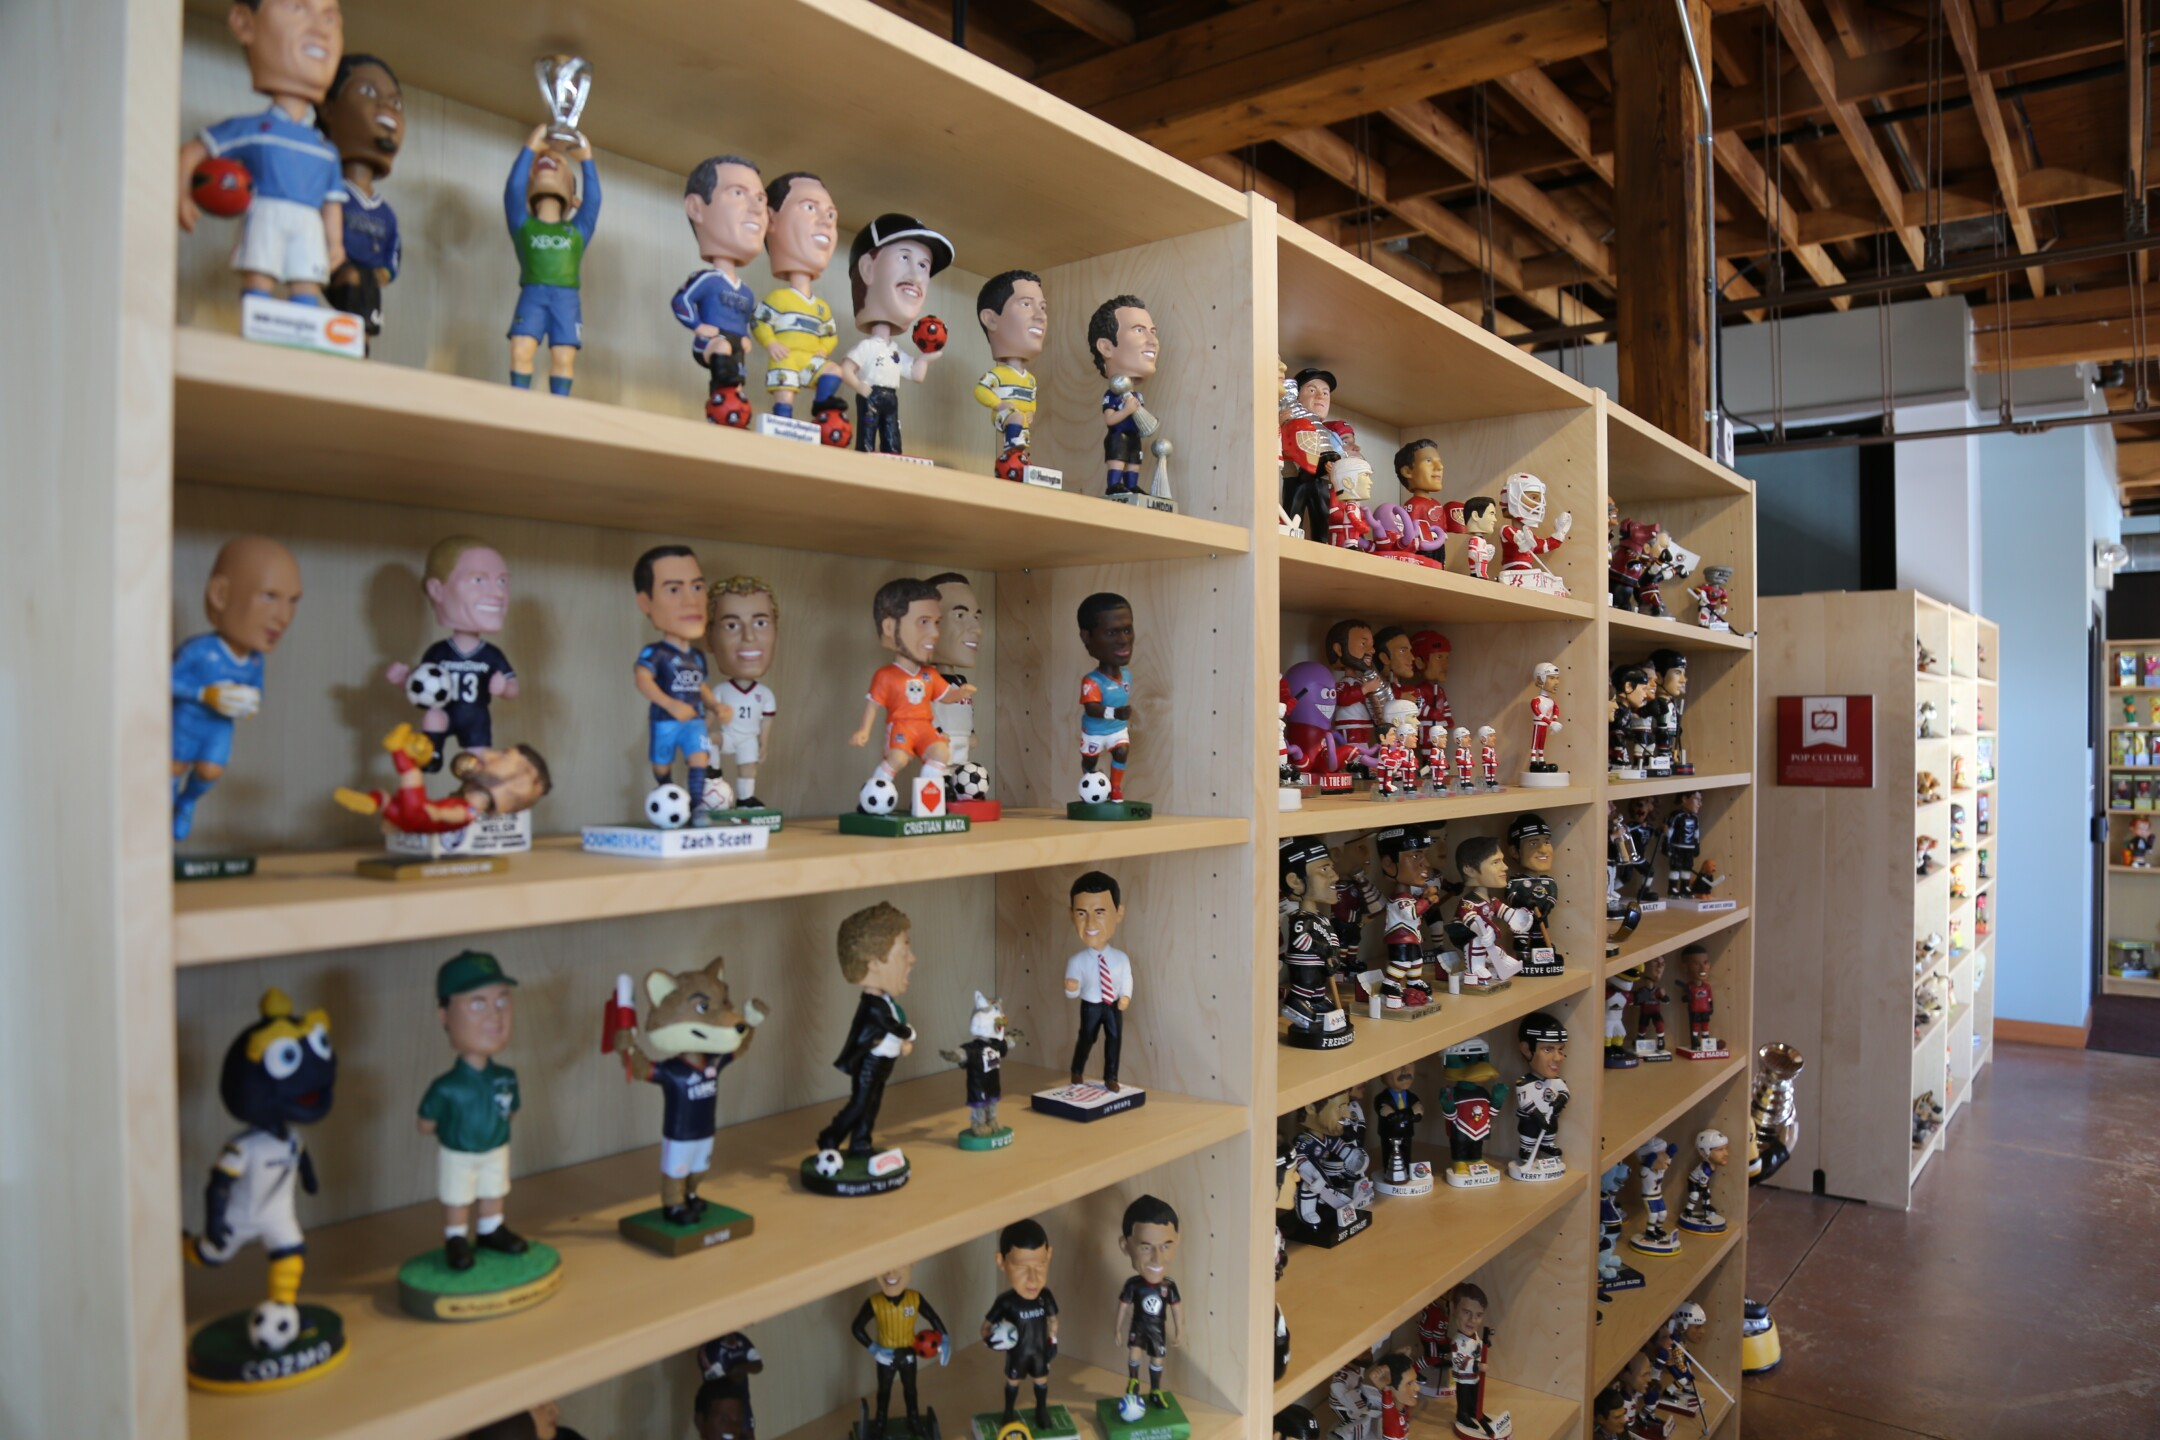 A tour of the National Bobblehead Hall of Fame and Museum